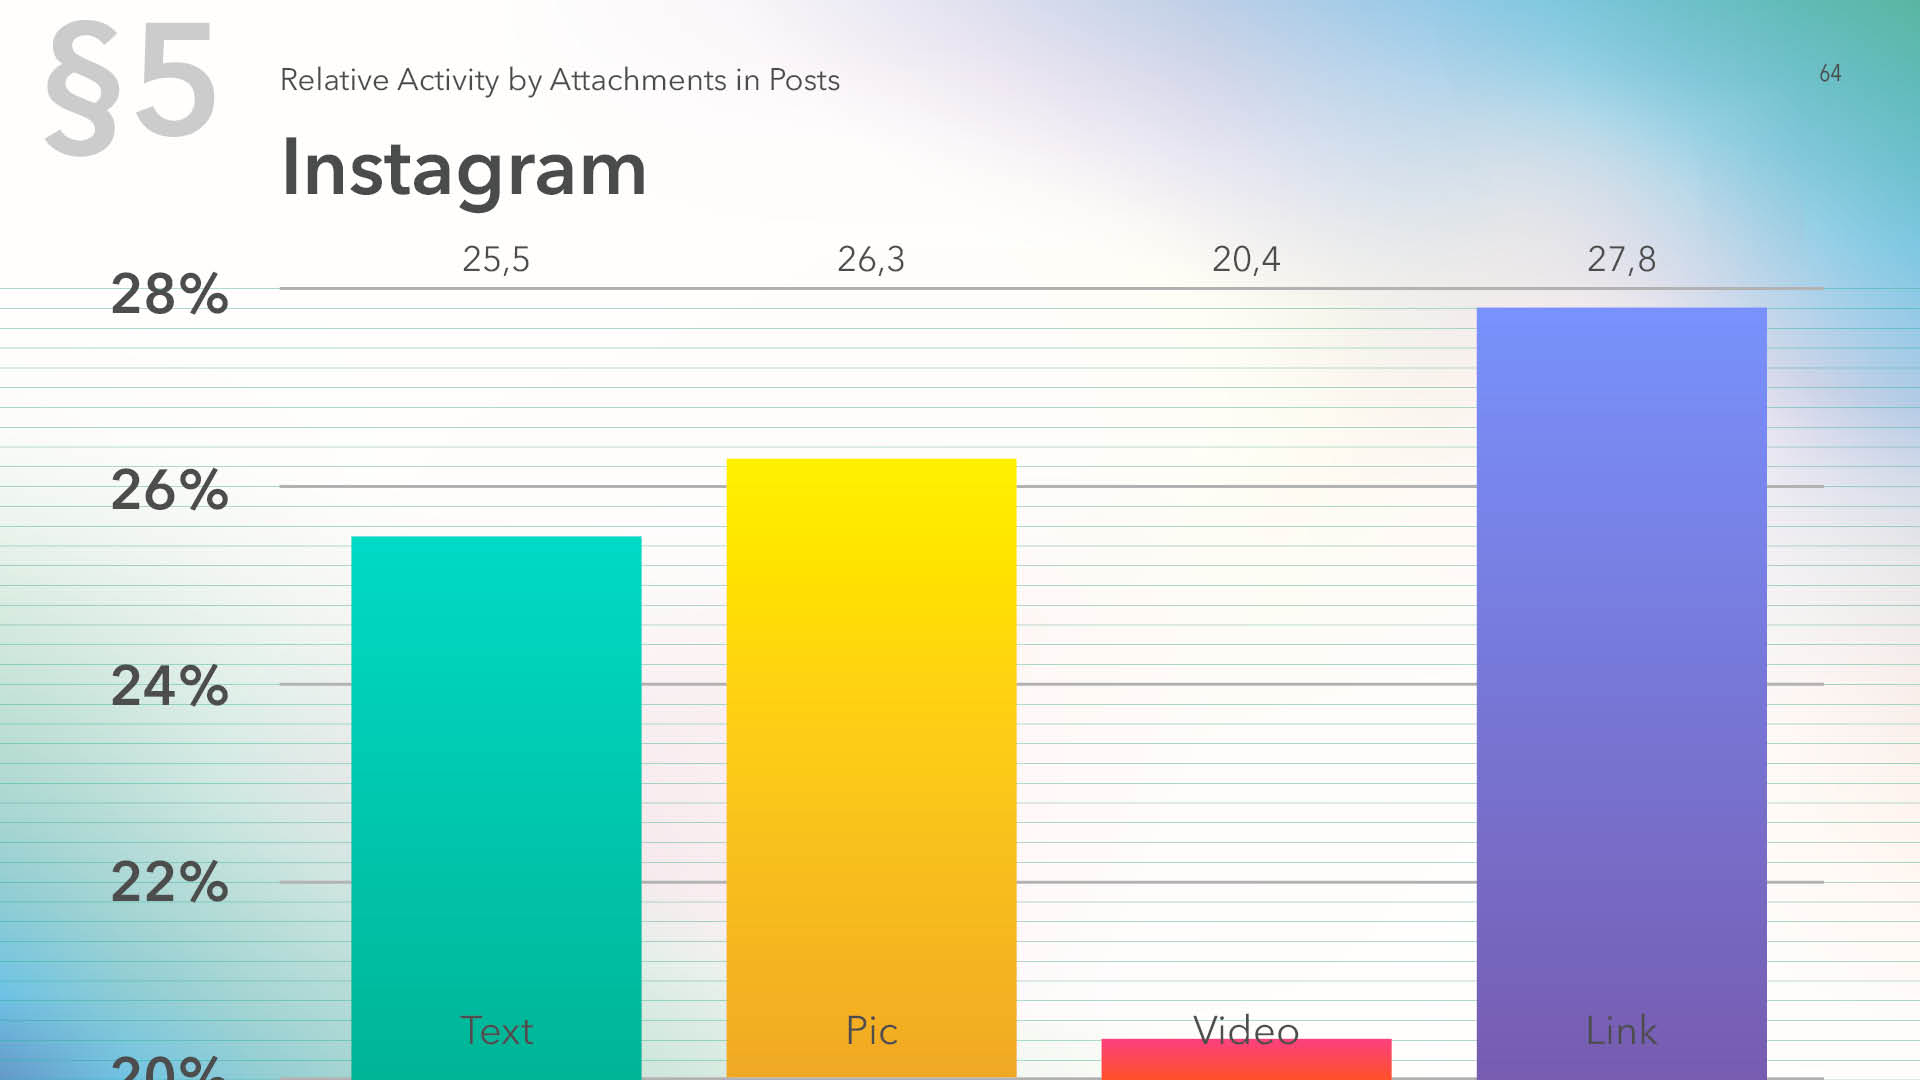 Relative activity on Instagram by content type in posts for 2019